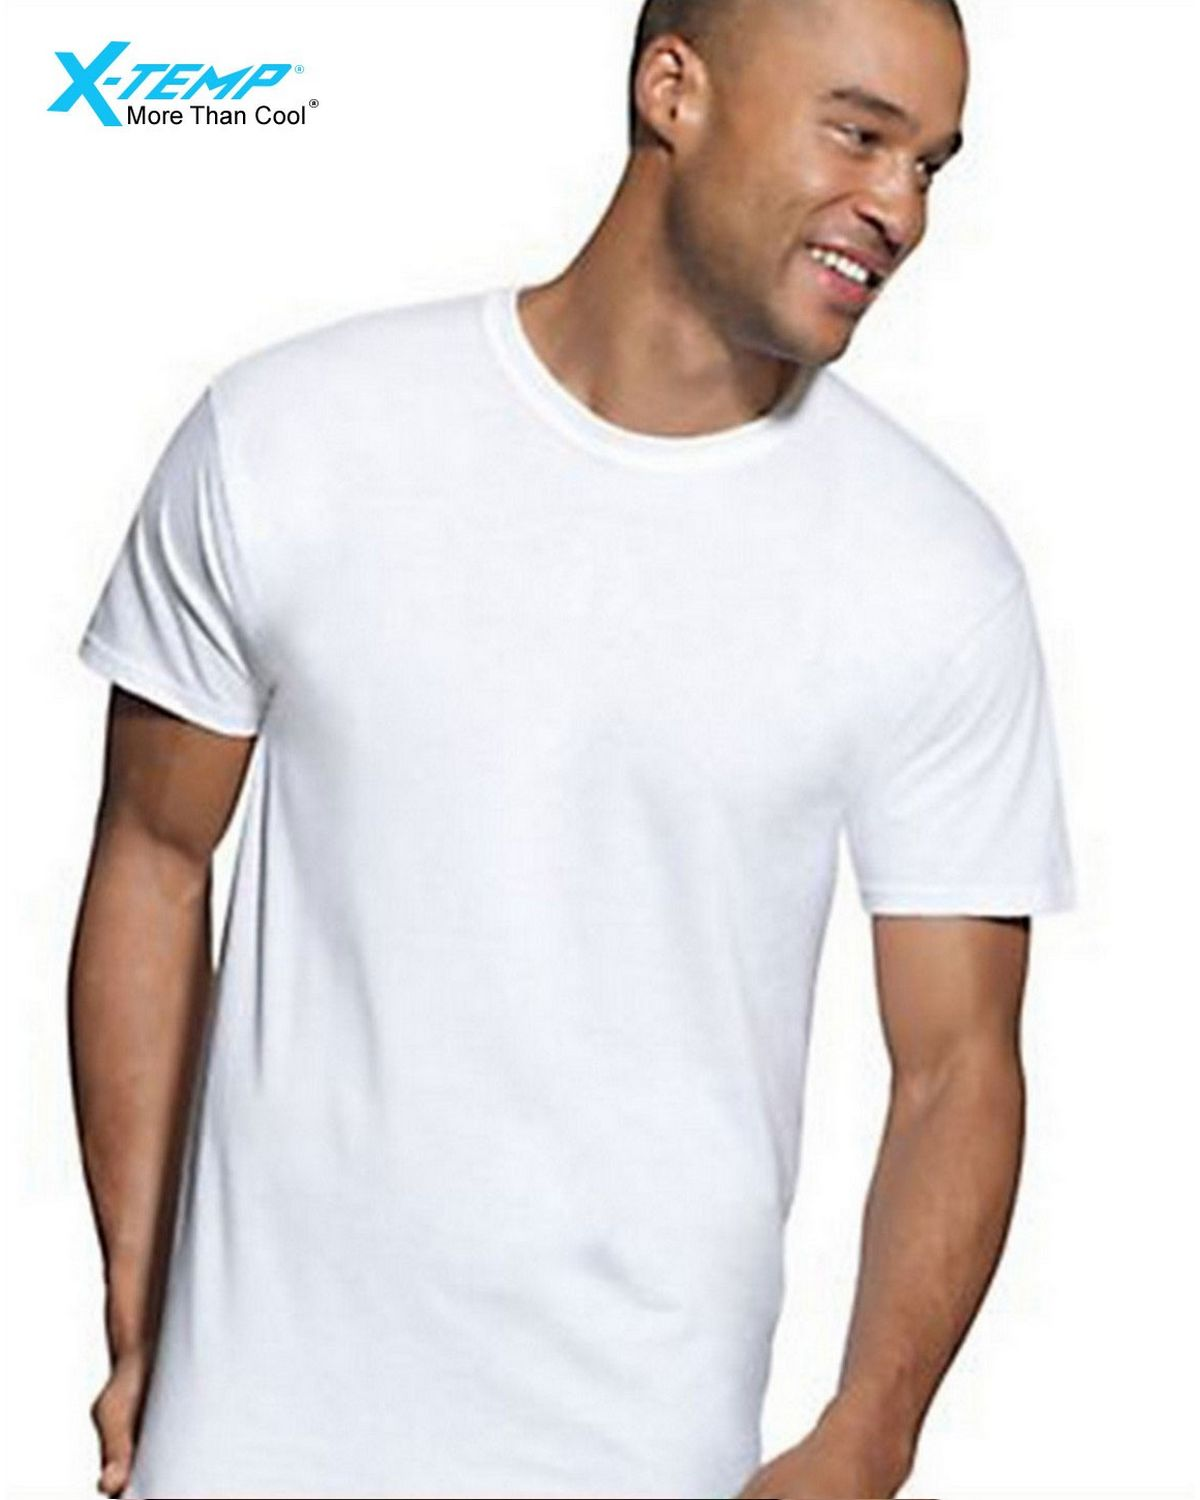 Hanes MTT1W3 Mens X-Temp Active Cool White Crewneck 3-Pack - White - L MTT1W3